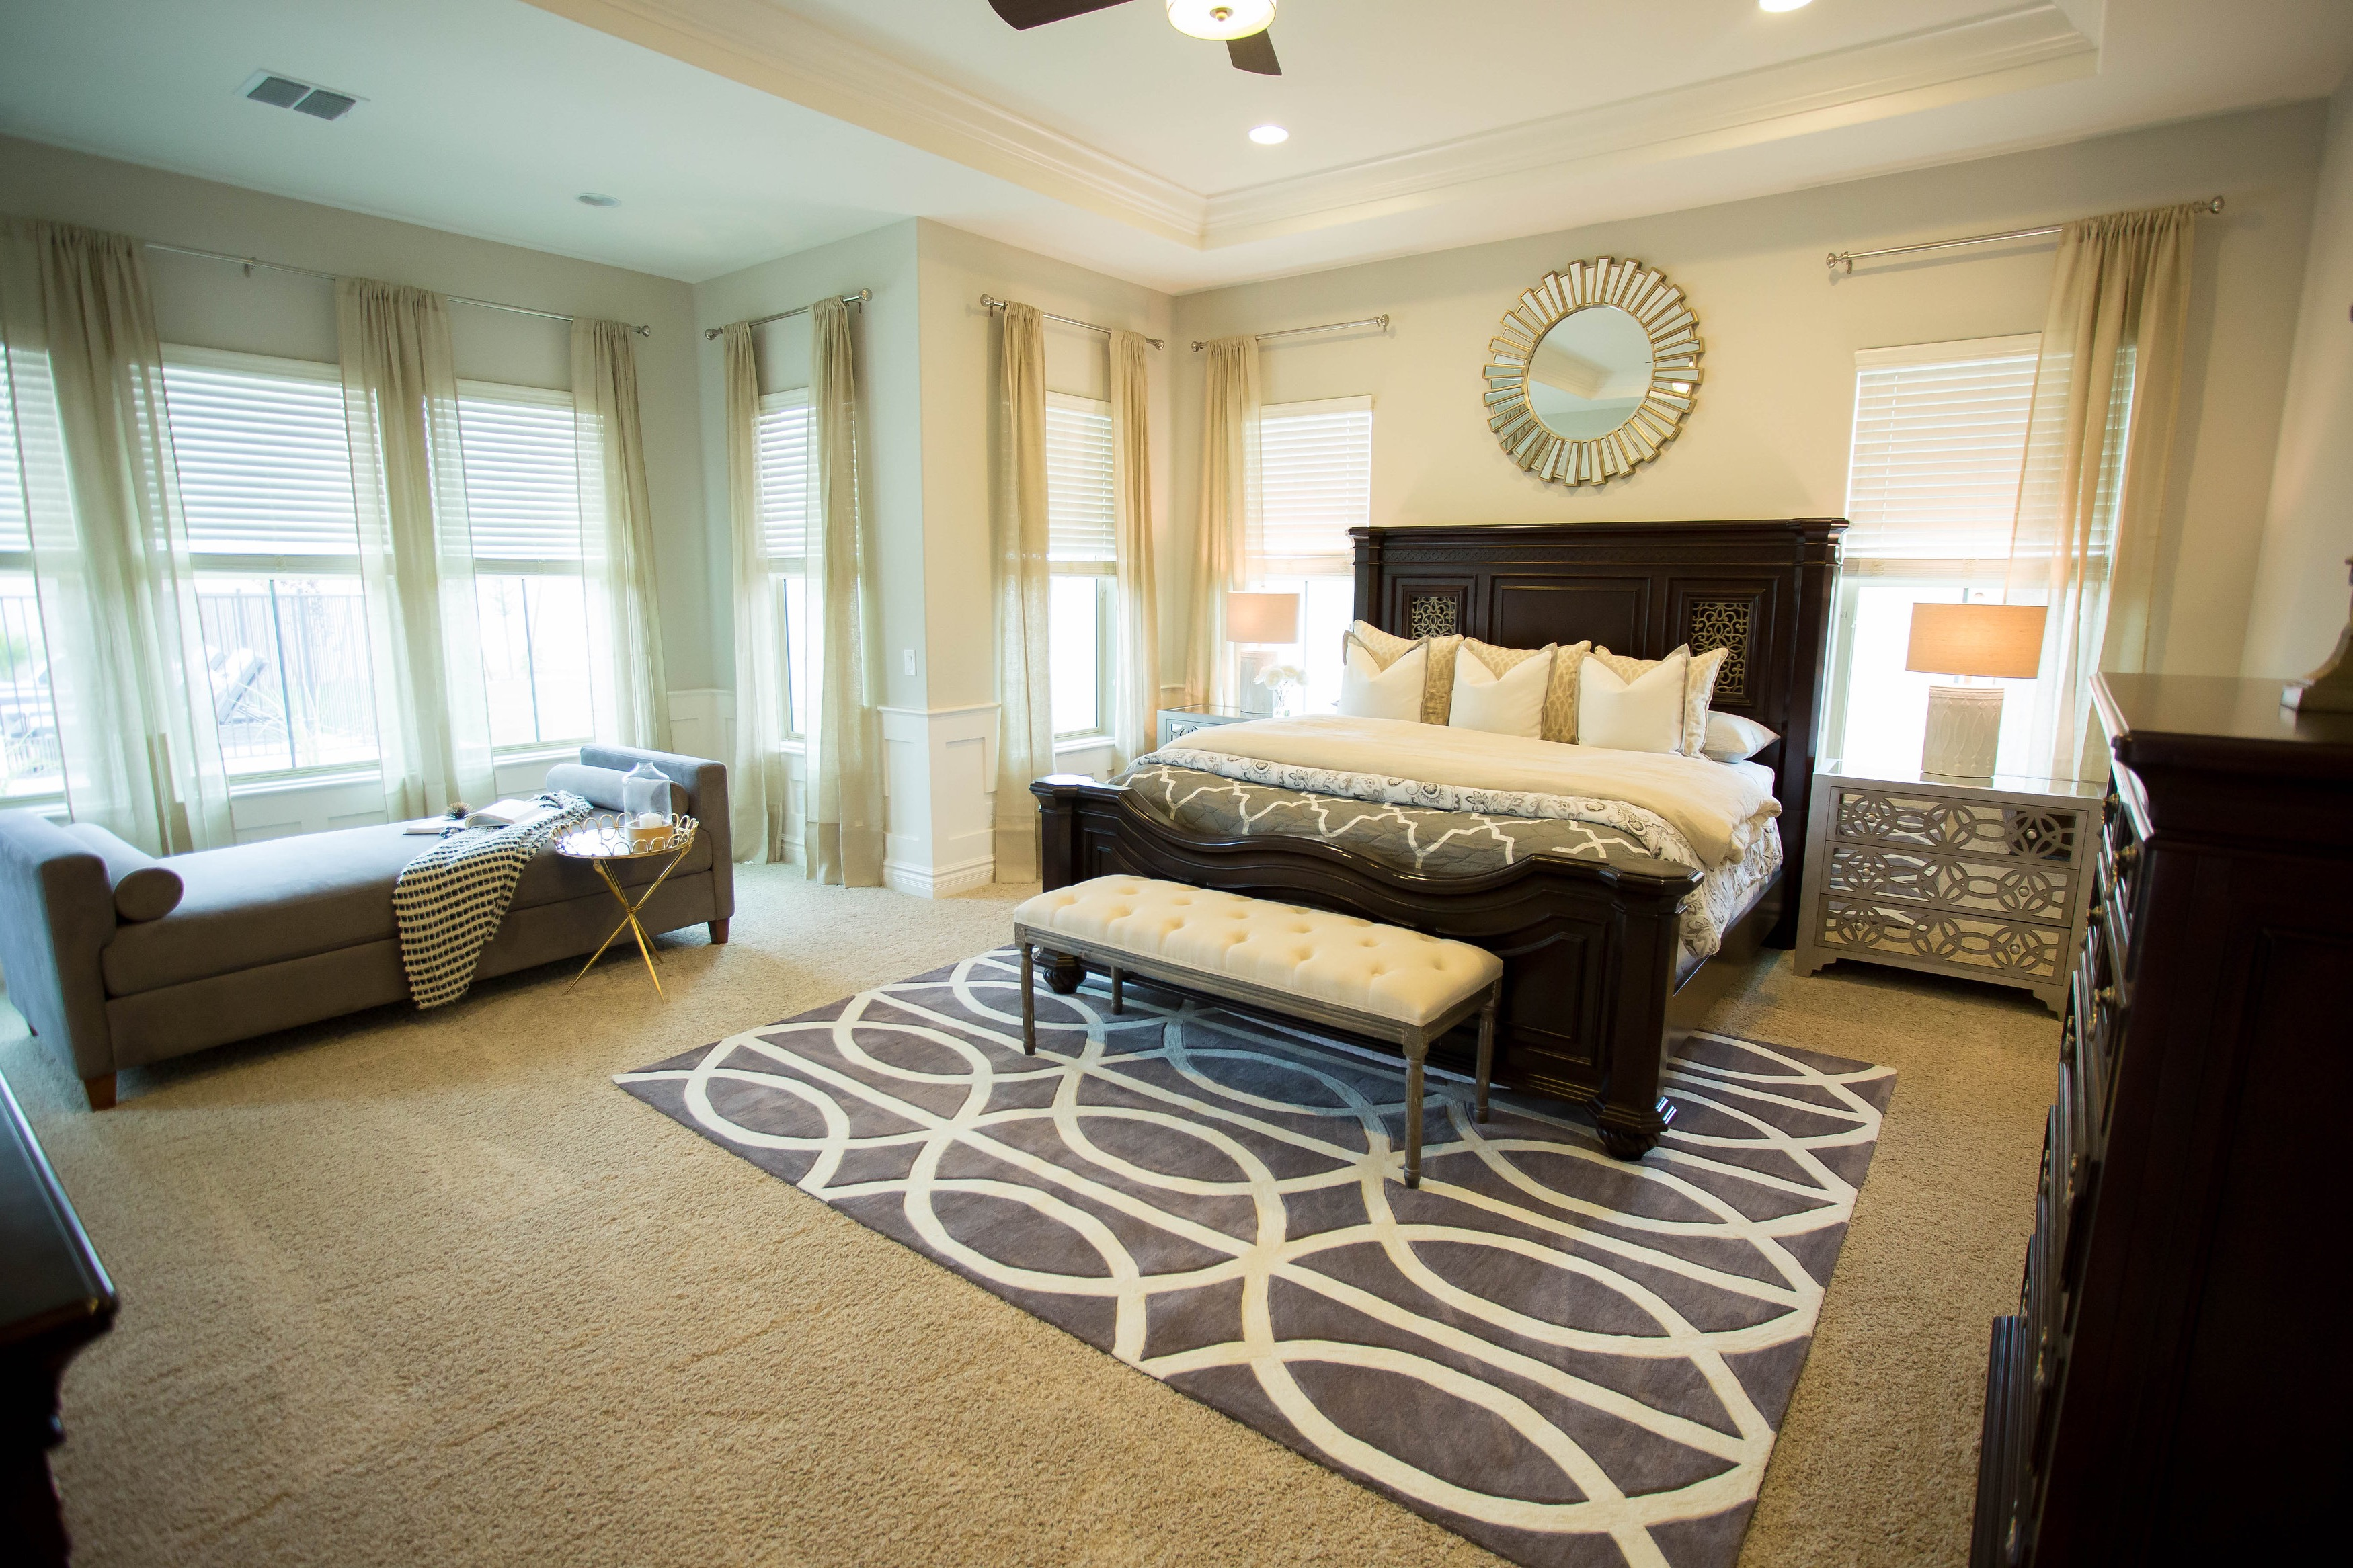 Glamorous Master Bedroom Decoration In Classic Style (View 10 of 28)